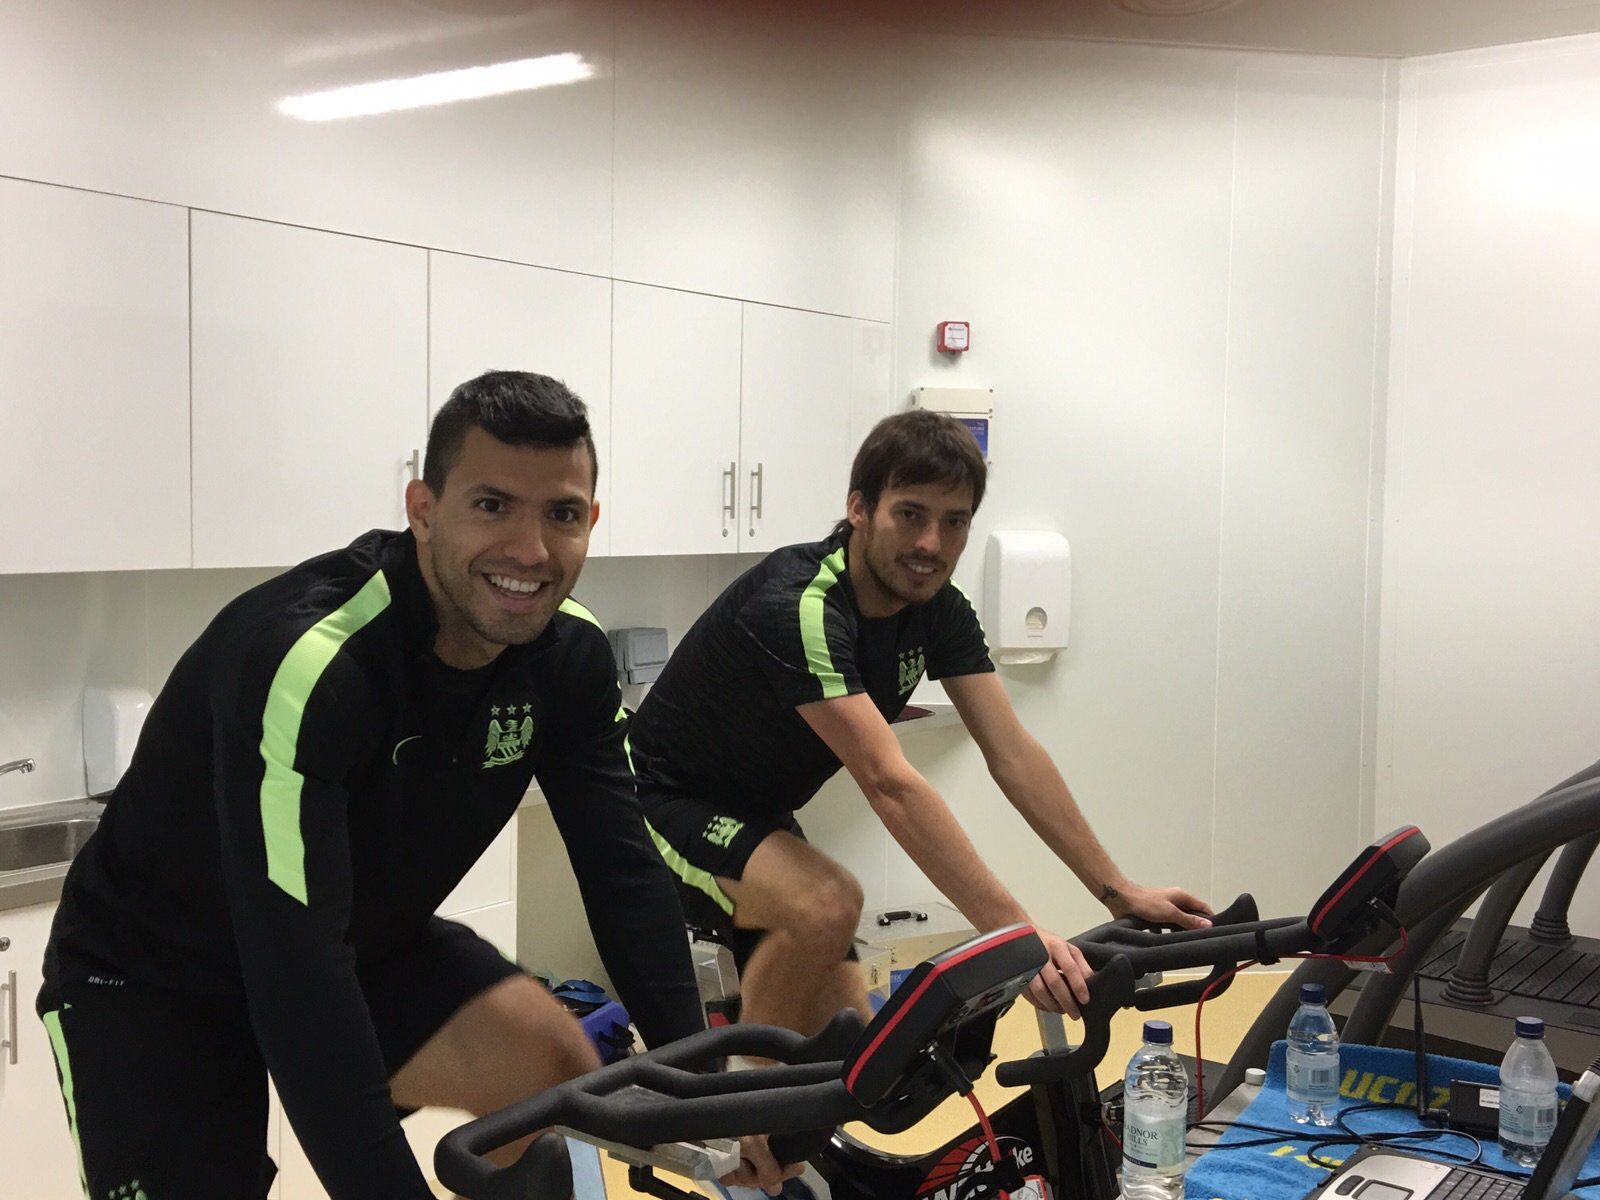 At the gym, starting my recovery work out with the great @21LVA https://t.co/6h62rnra6w